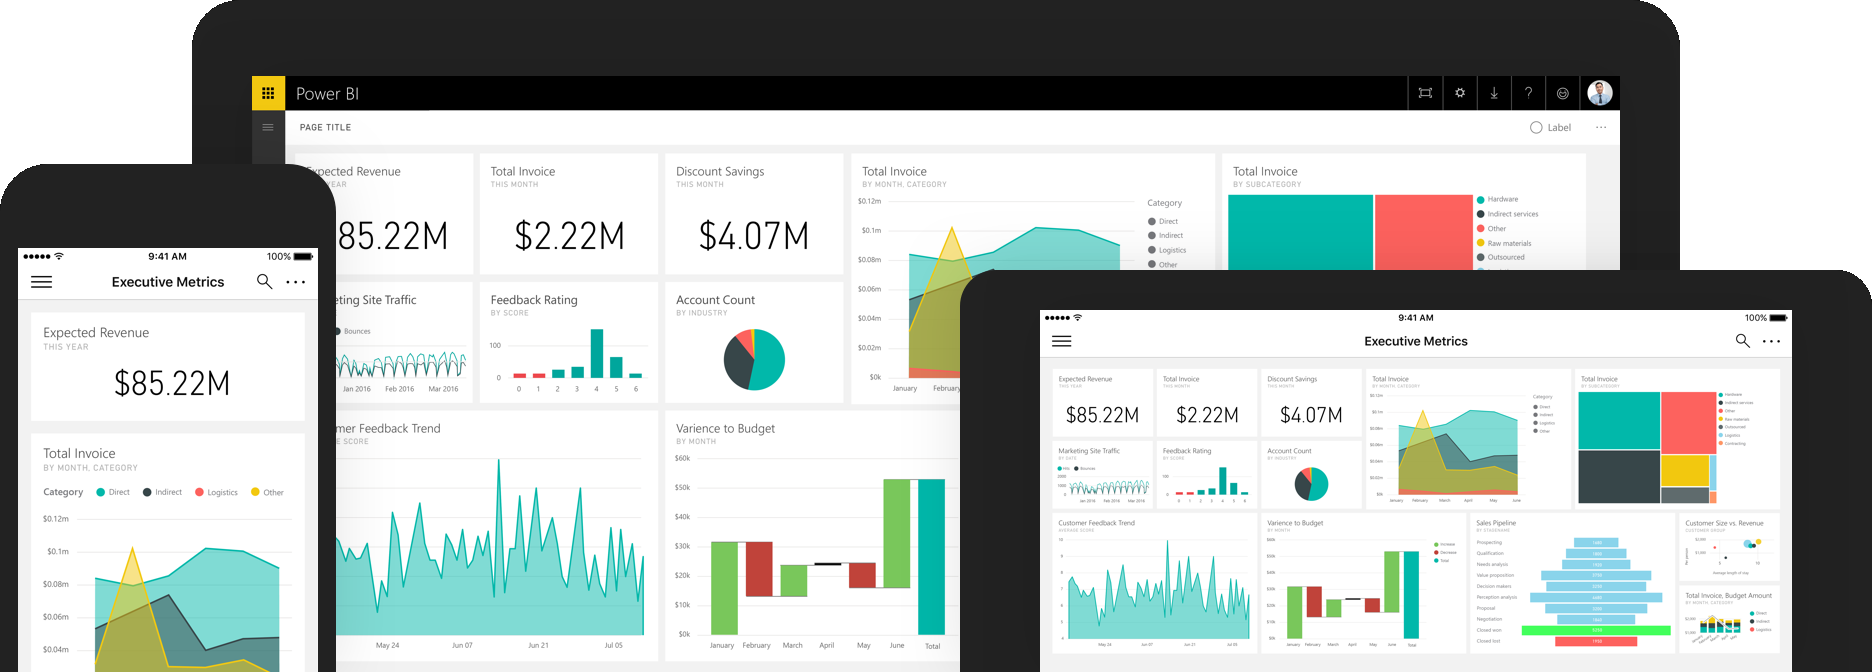 Power BI running on a phone and a tablet